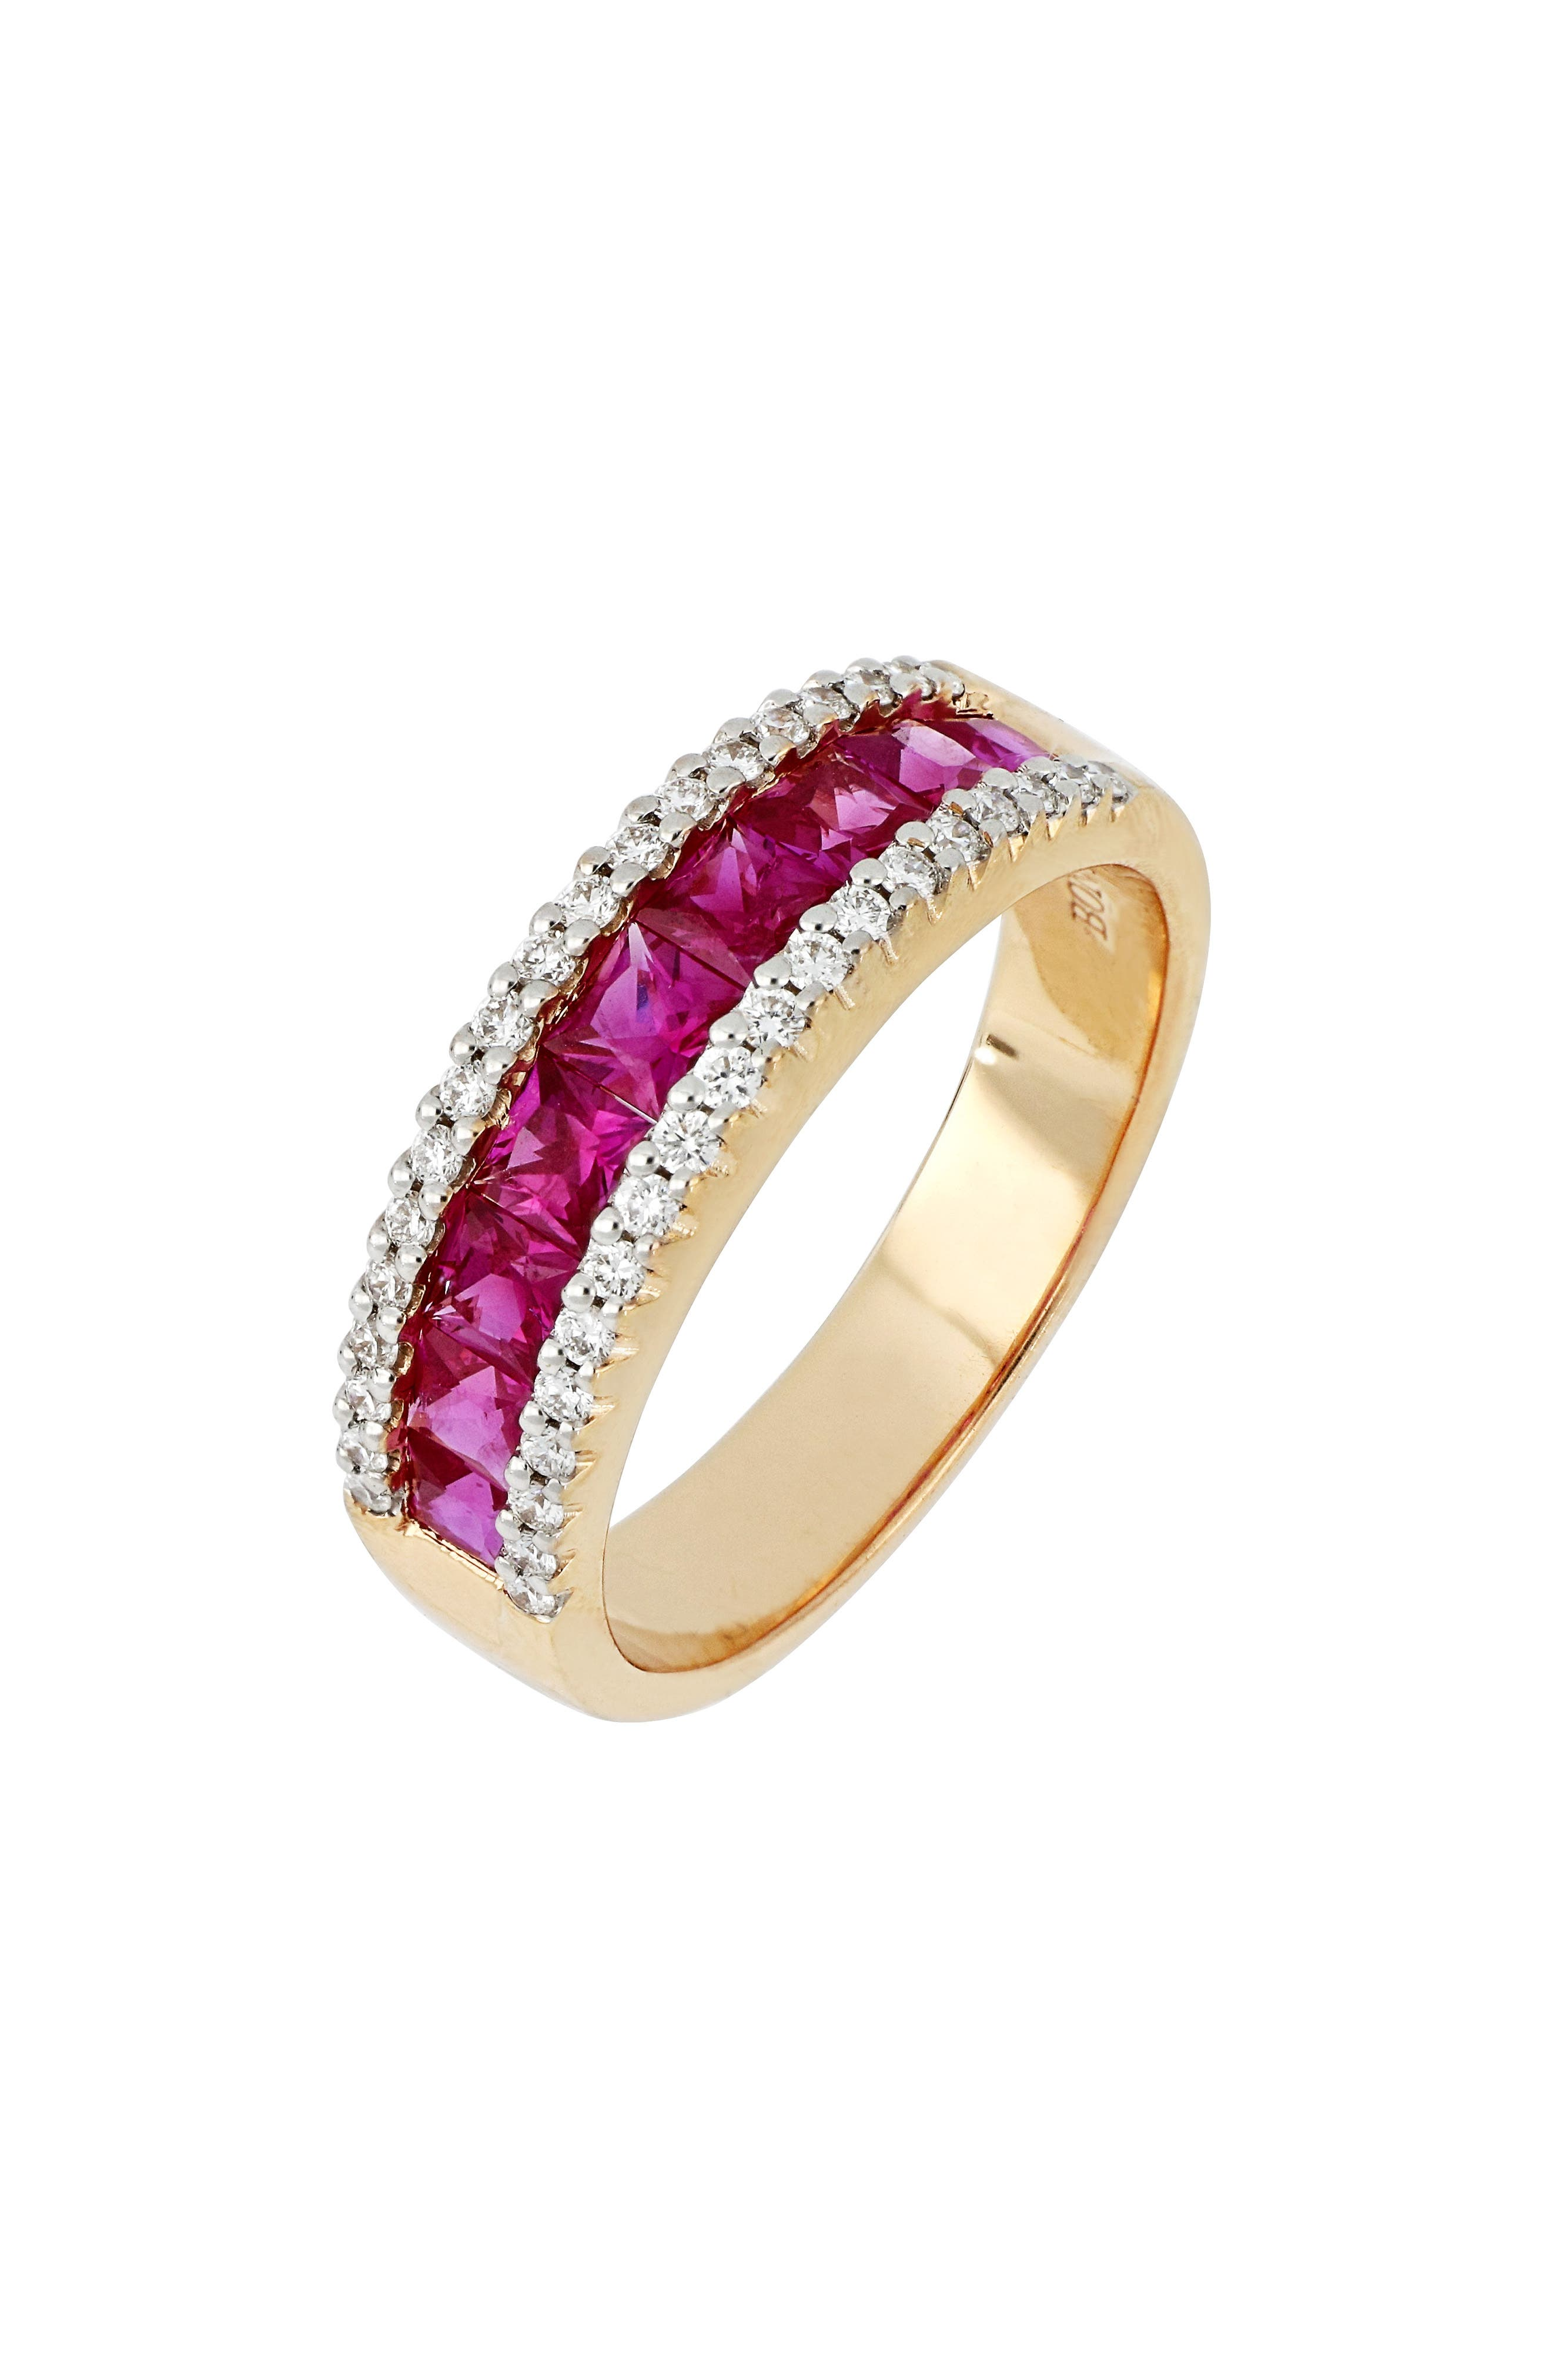 Diamond & Ruby Band Ring,                         Main,                         color, ROSE GOLD/ RUBY